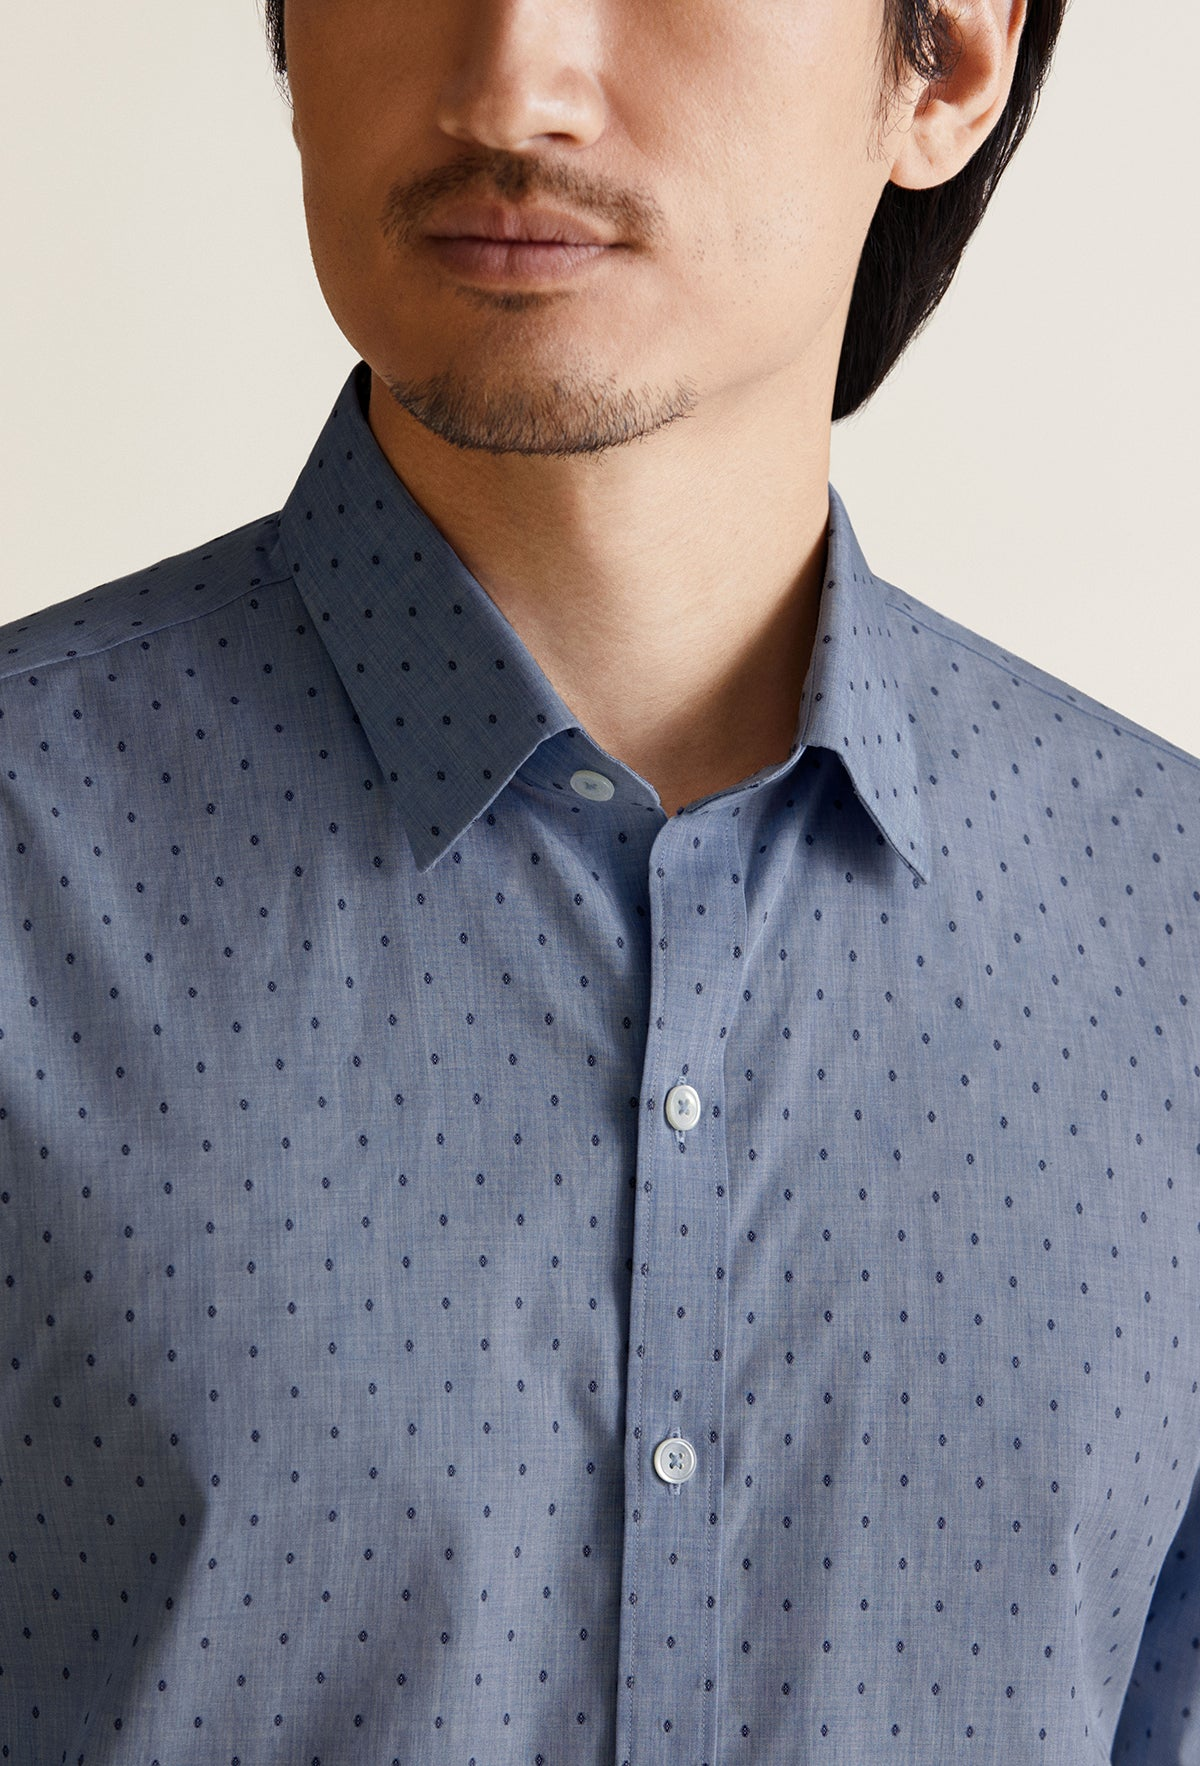 men's denim polka dot shirt long sleeve dress shirt